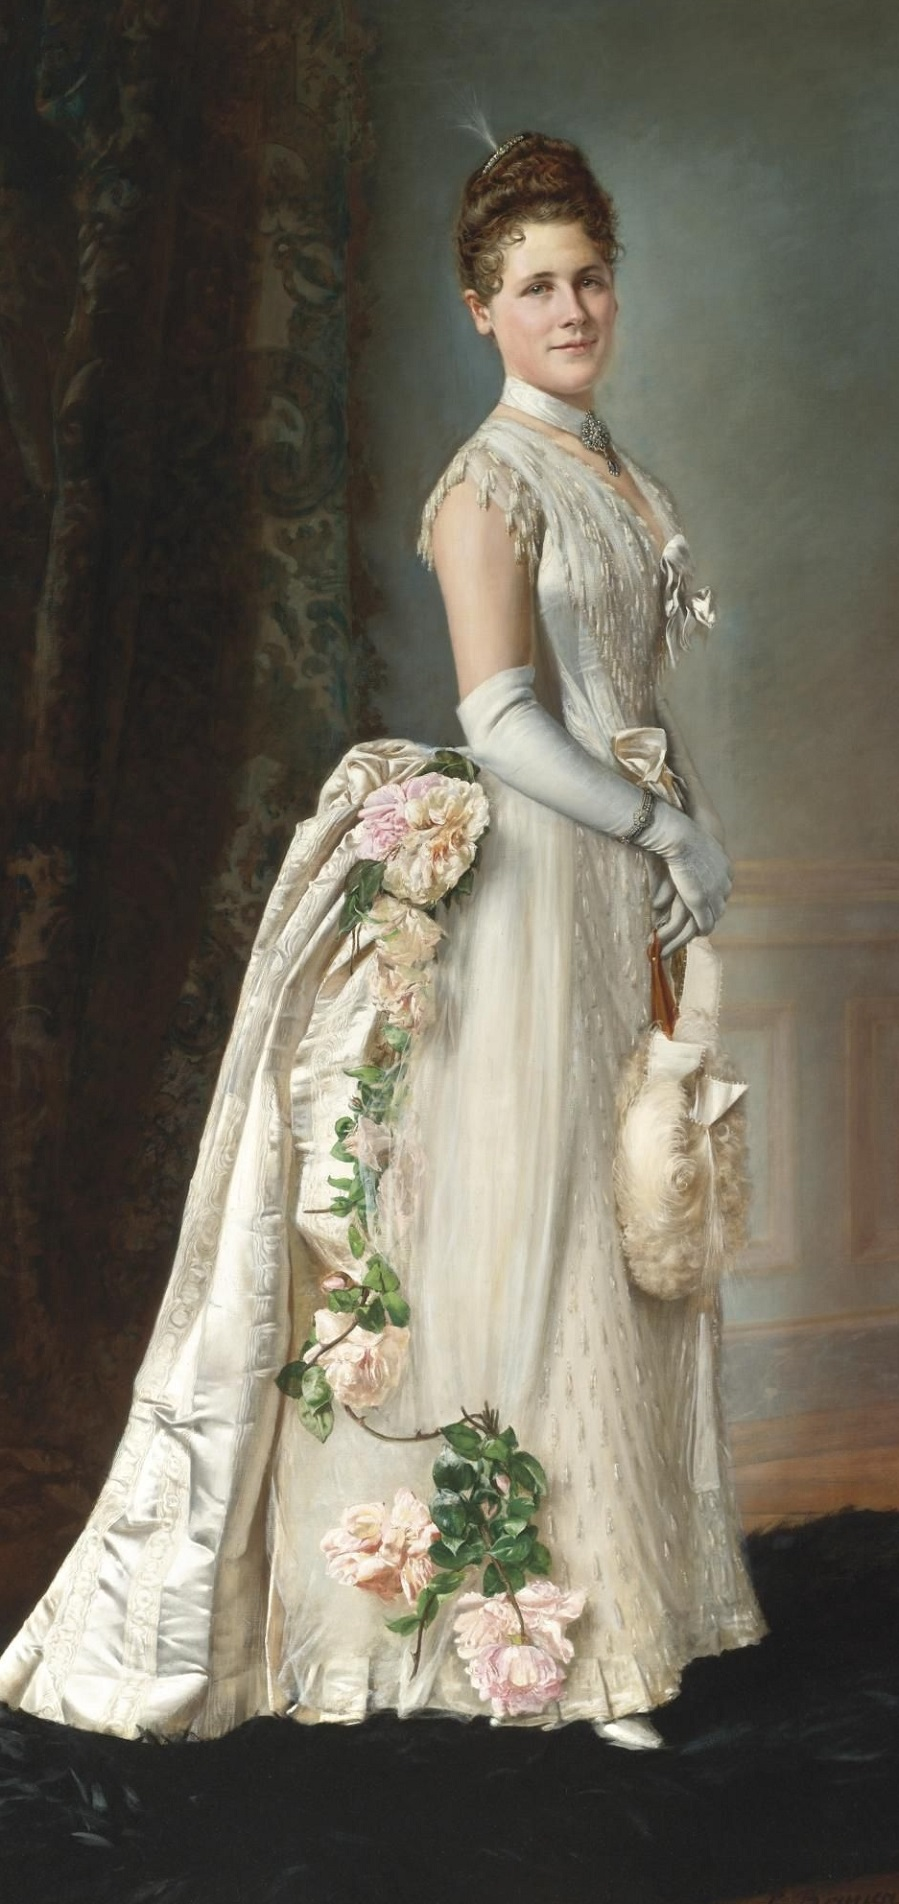 Portrait-of-an-Elegant-Lady.jpg